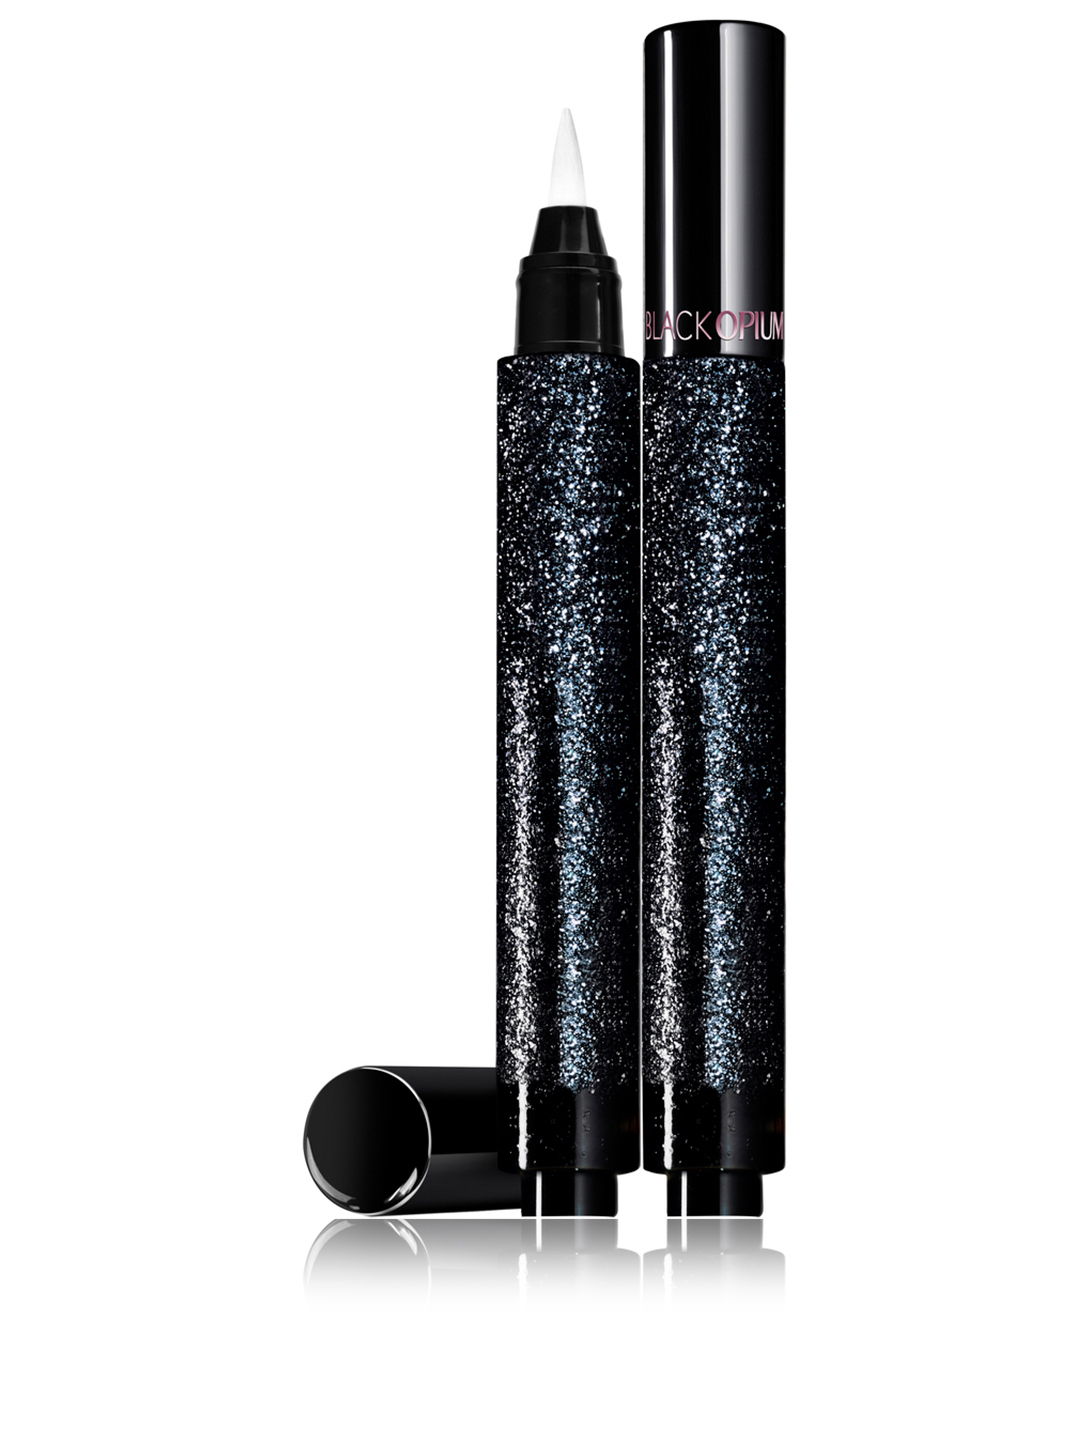 YVES SAINT LAURENT Black Opium Click & Go Beauty